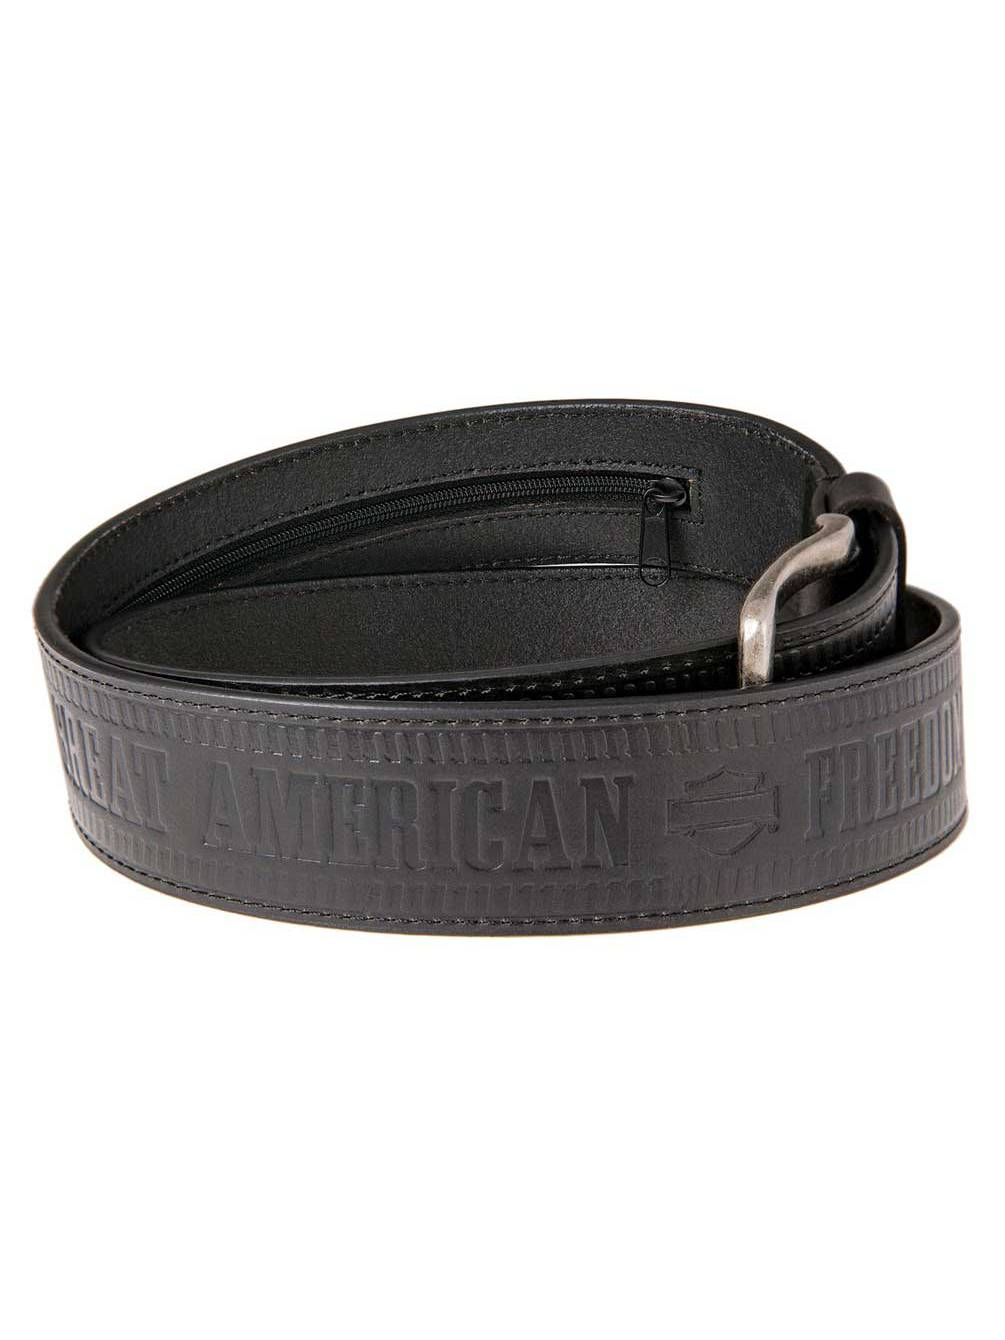 Harley-Davidson Men/'s Textured Metal Font Genuine Leather Belt HDMBT11387-BLK